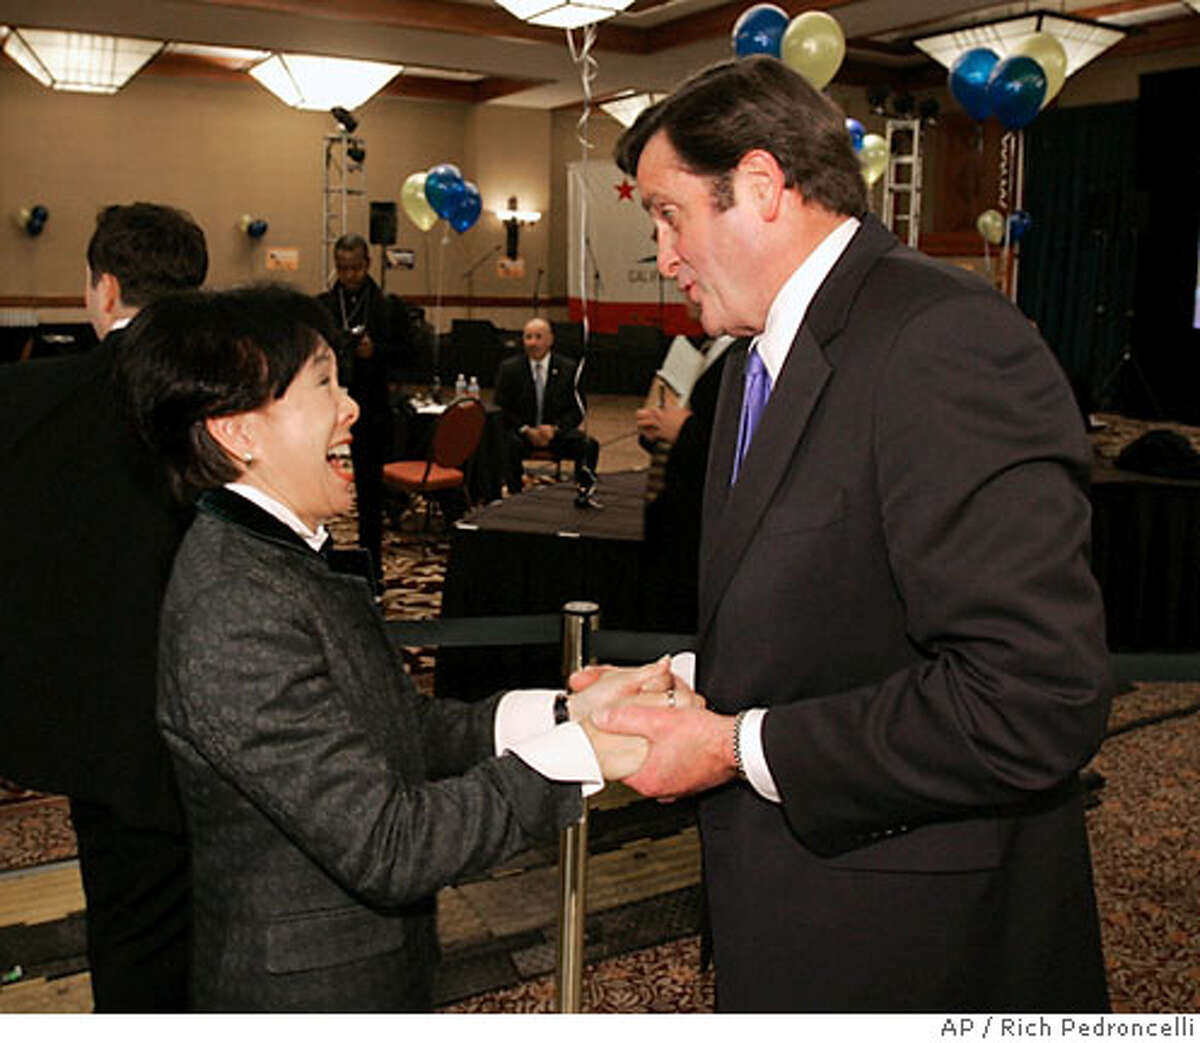 Rep. Doris Matsui, D-Sacramento, left, talks with Insurance Commissioner John Garamendi, the Democratic candidate for lieutenant governor, in the early evening hours of election night in Sacramento, Calif., Tuesday, Nov. 7, 2006. Garamendi is running against Republican state Sen. Tom McClintock. (AP Photo/Rich Pedroncelli)